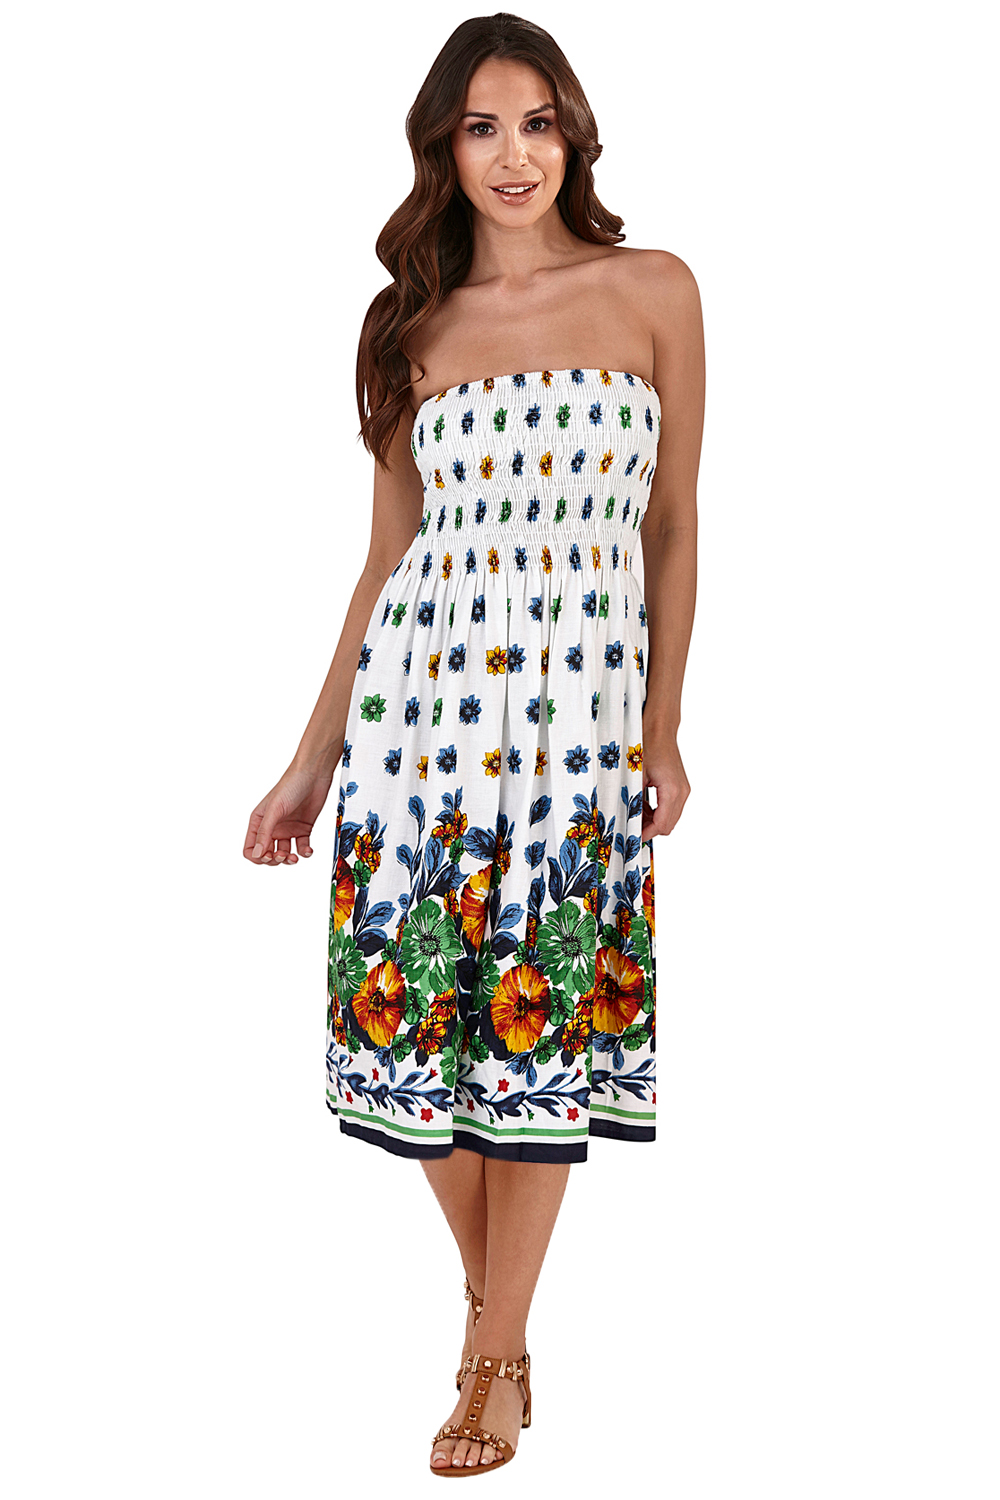 Pistachio-Womens-Patterned-3-In-1-Dresses-Ladies-New-Cotton-Summer-Beach-Skirts thumbnail 8